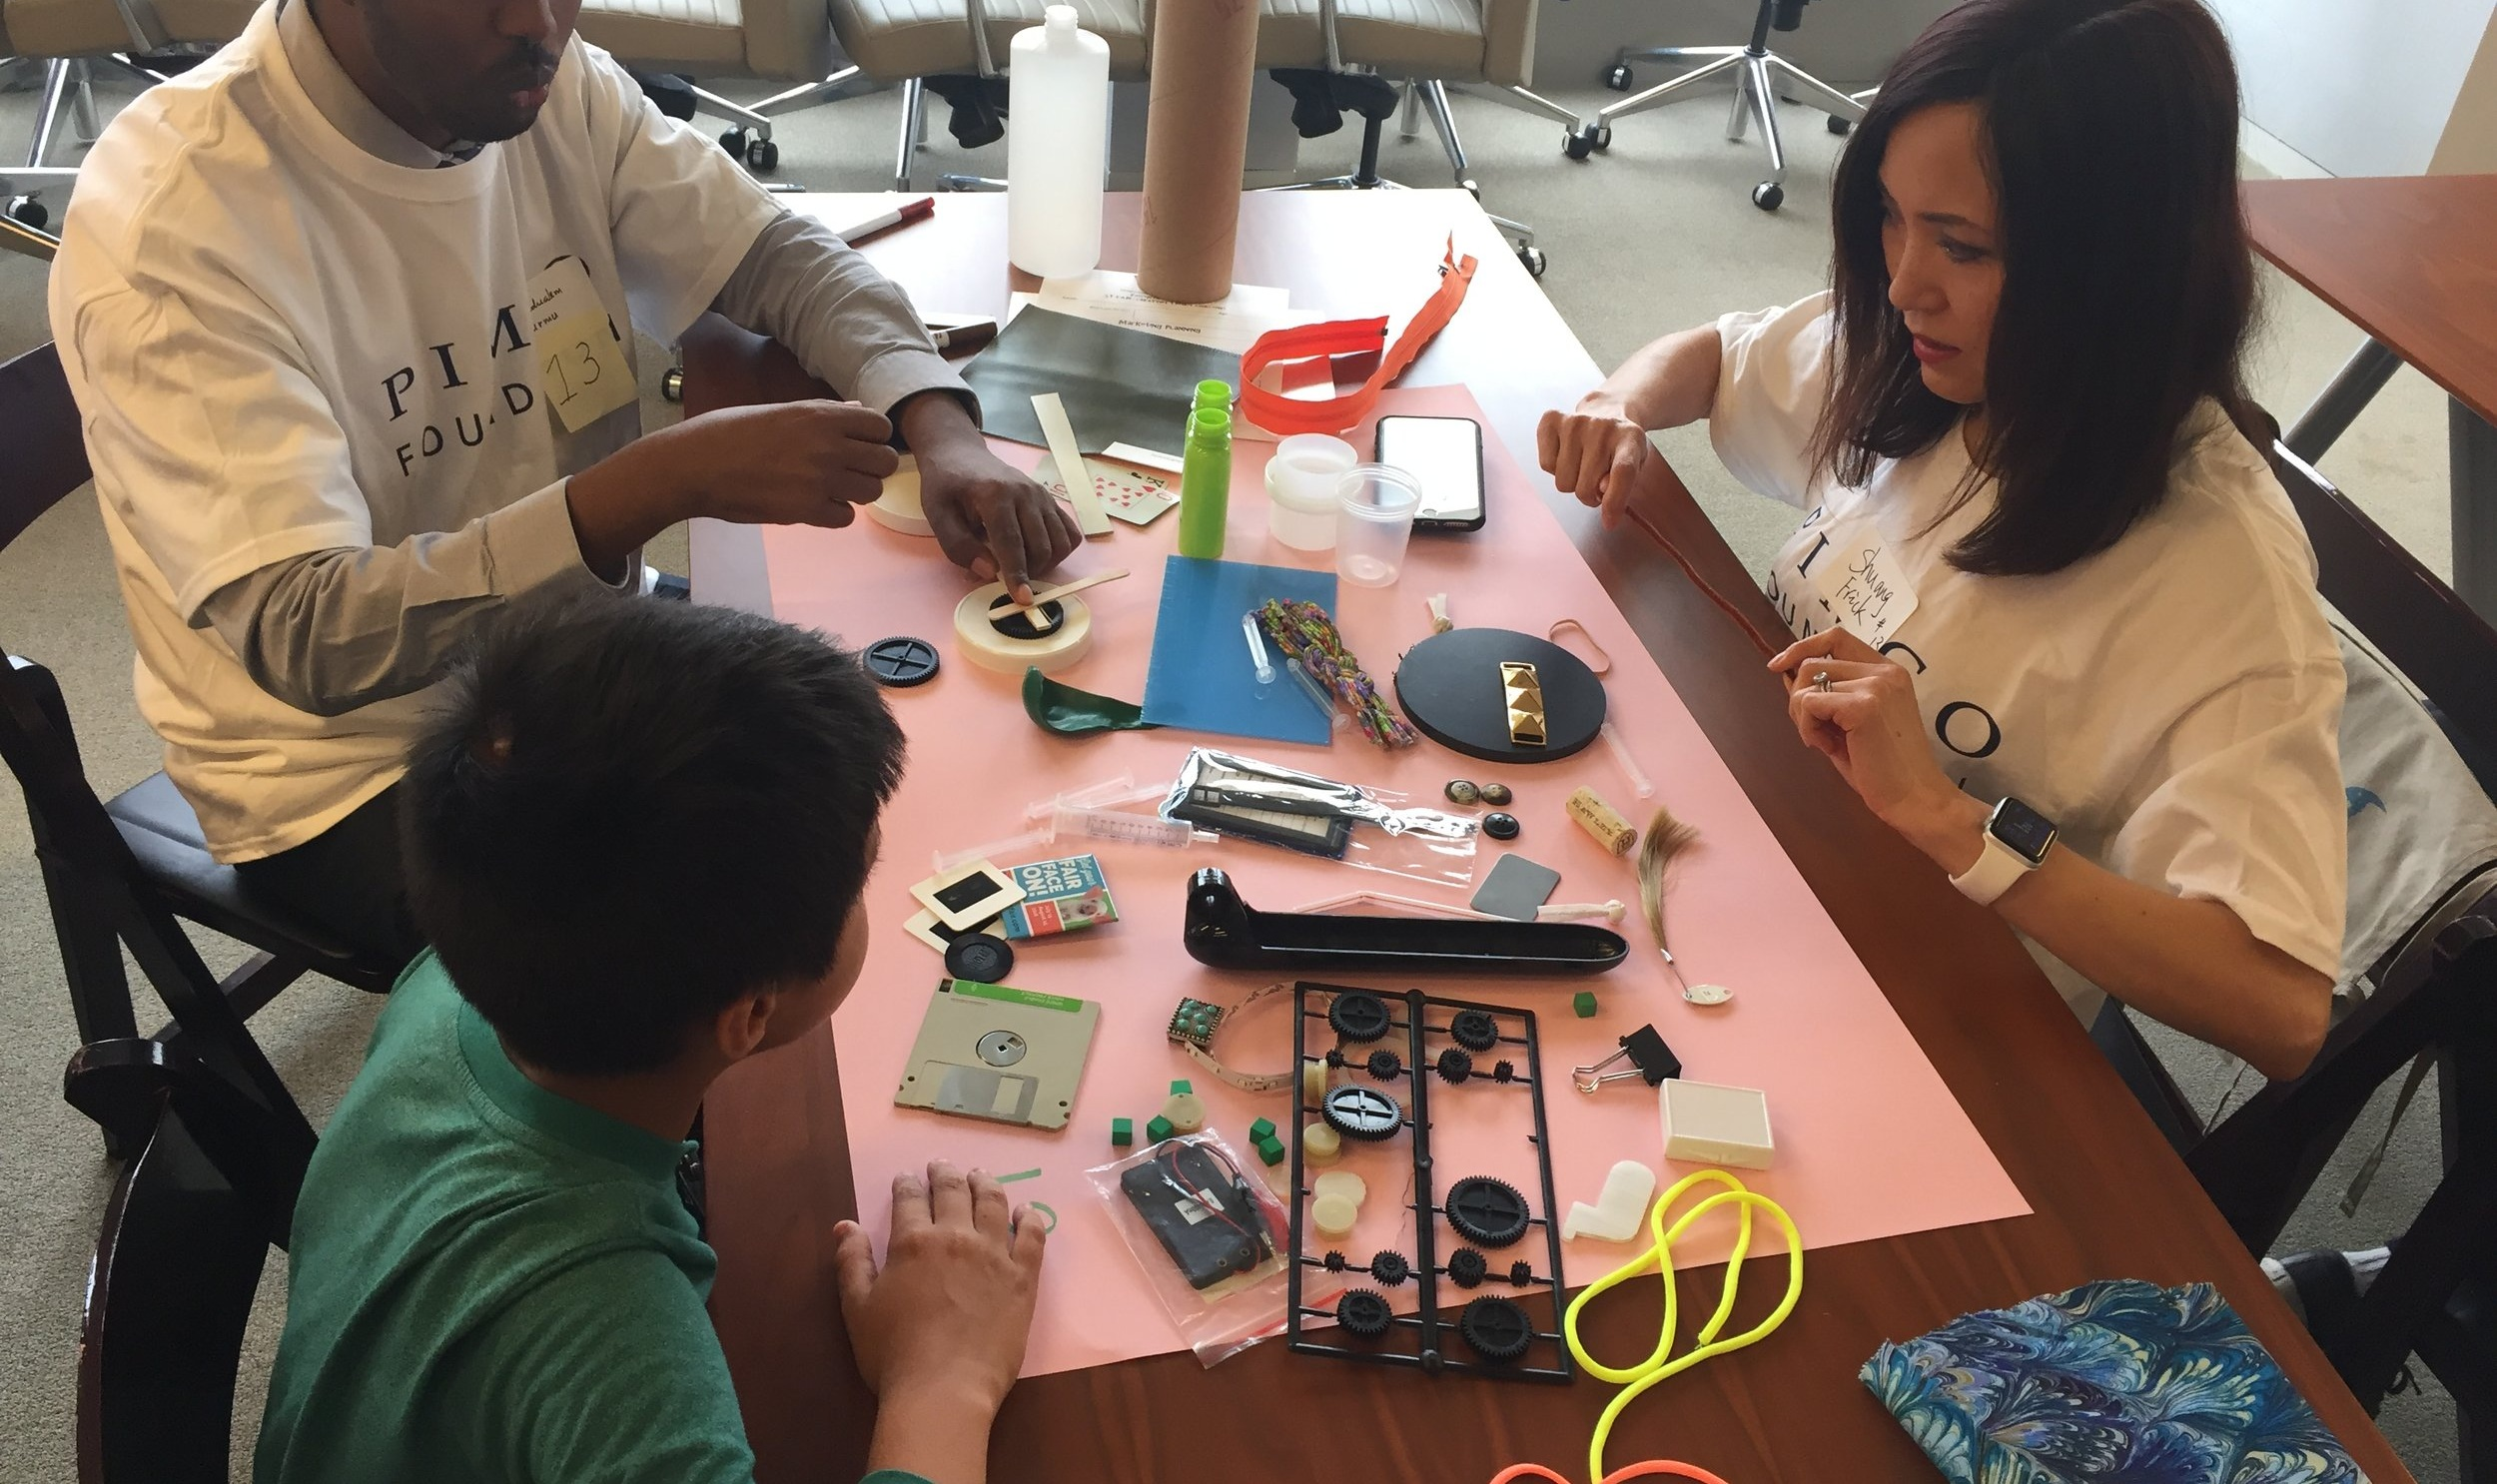 OUTREACH AT YOUR LOCATION - Have us come to your school or community location for some creativity-enhancing, hands-on, S.T.E.A.M.-based workshops. We bring the materials, the staff, and the knowledge to your location — you bring the creativity!We have numerous options available for classrooms, scouts, teachers, and corporate professionals. For additional questions or special circumstances, please email us at info@childcreativitylab.org.